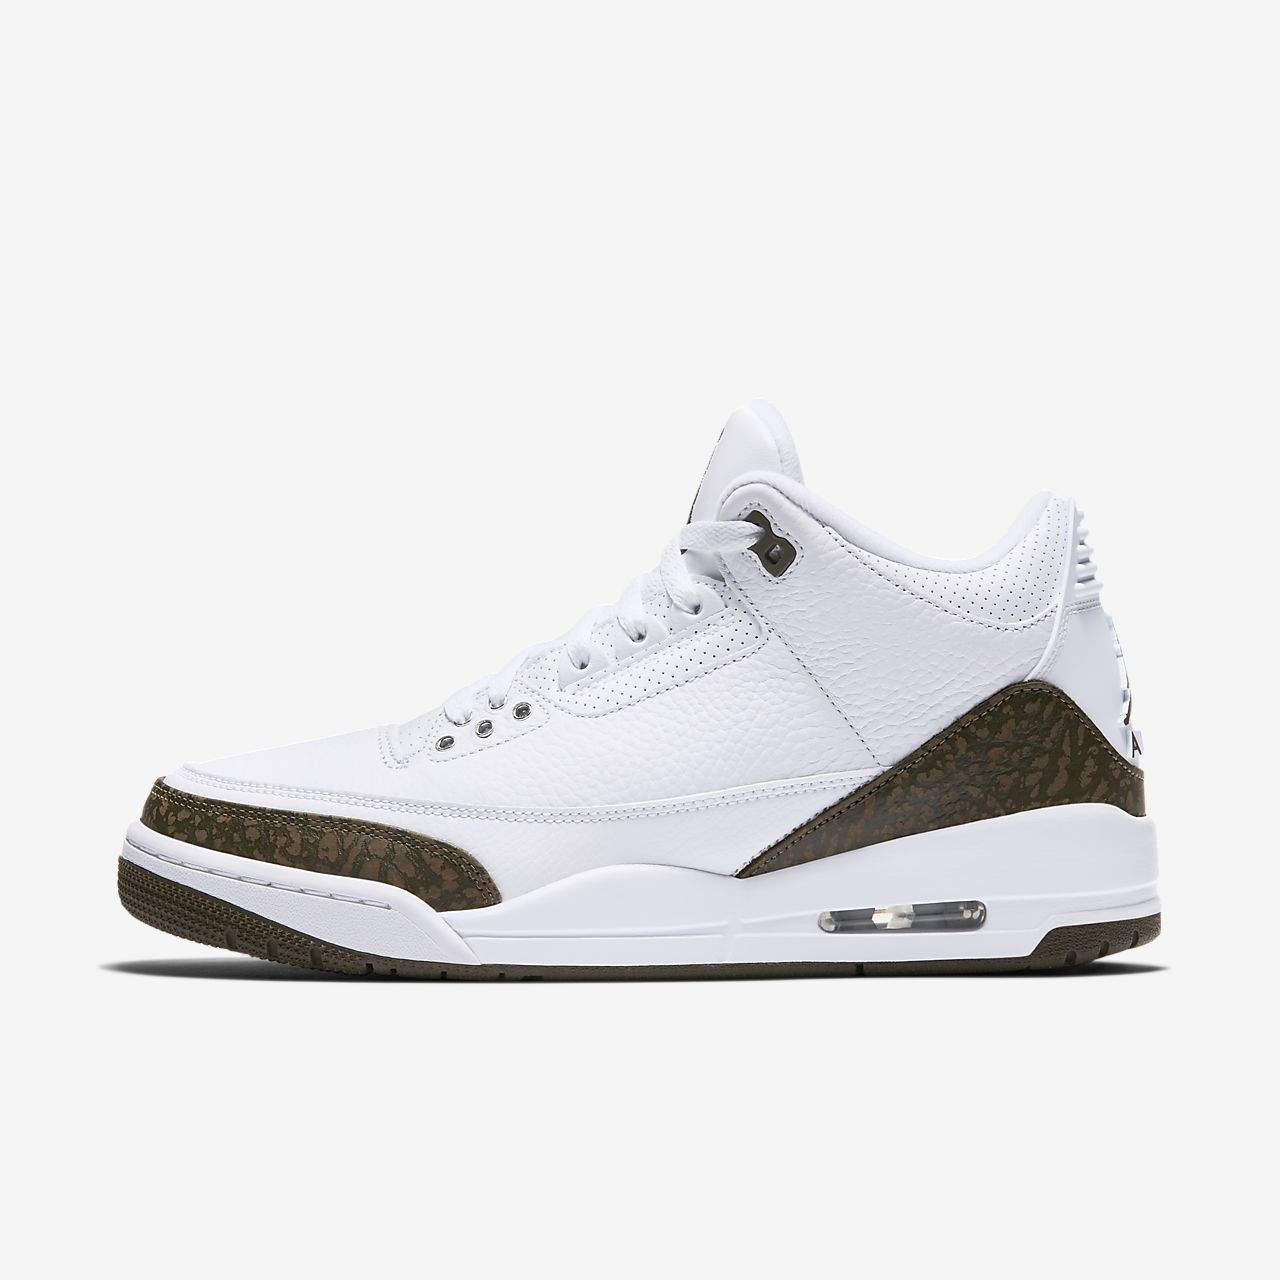 a8edac2868f1 Air Jordan 3 Retro Men s Shoe. Nike.com IN